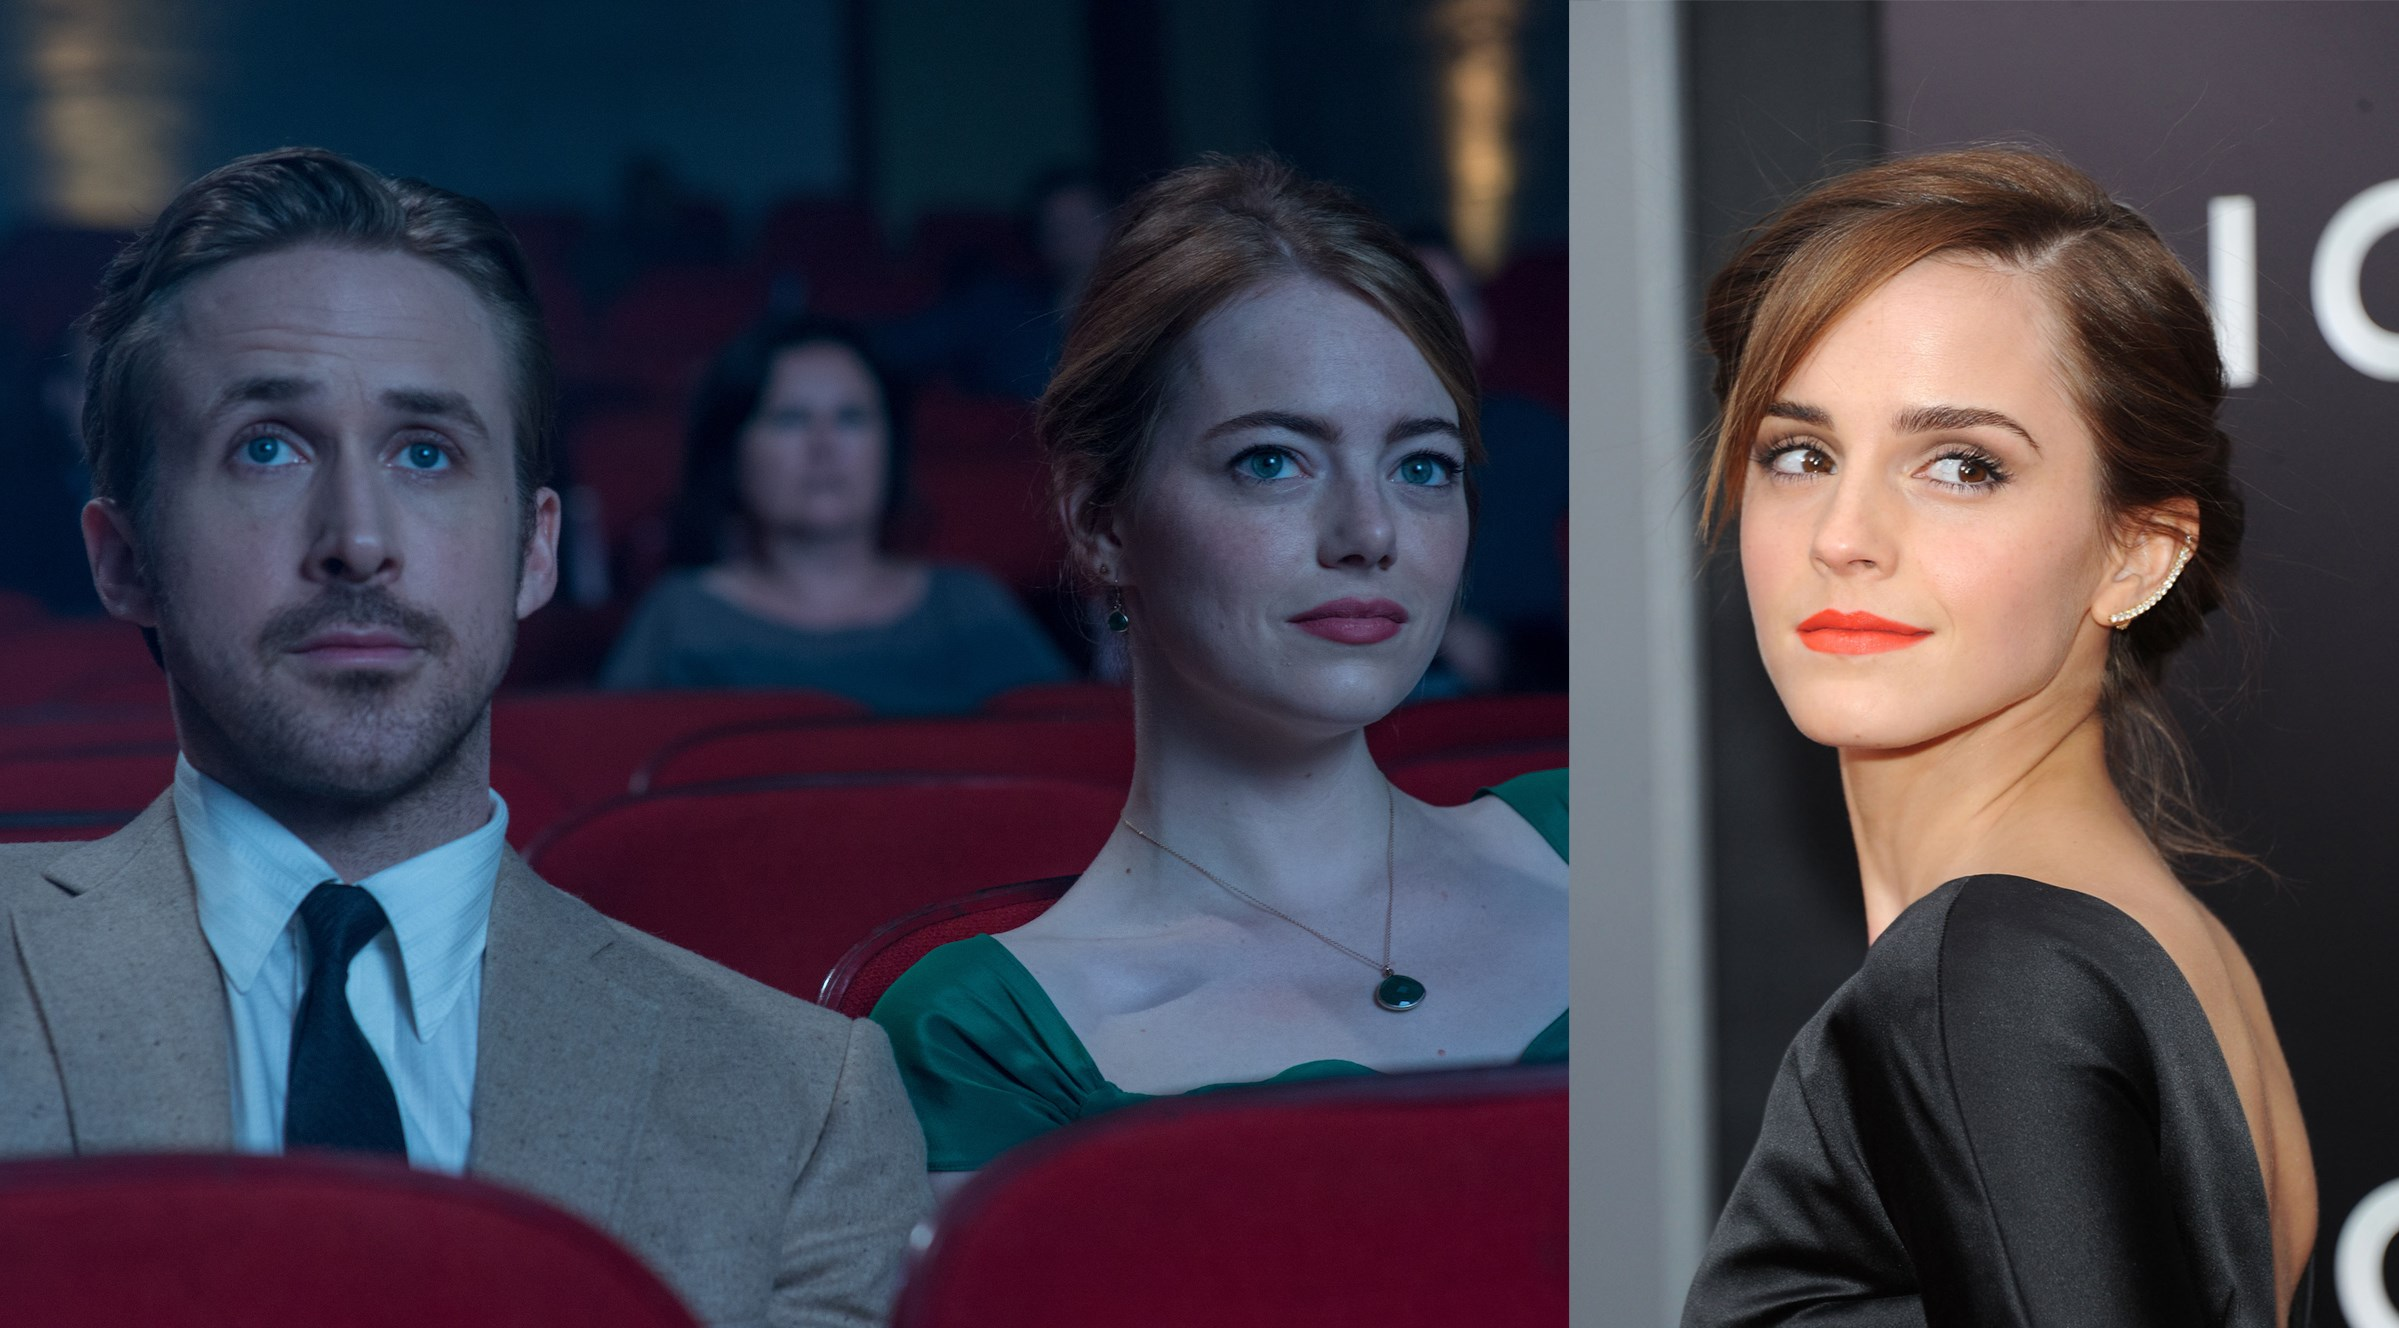 Emma Stone teamed up with her on-screen soulmate Ryan Gosling for the second time in <em>La La Land</em>, but Emma's role almost went to another Emma: Watson.